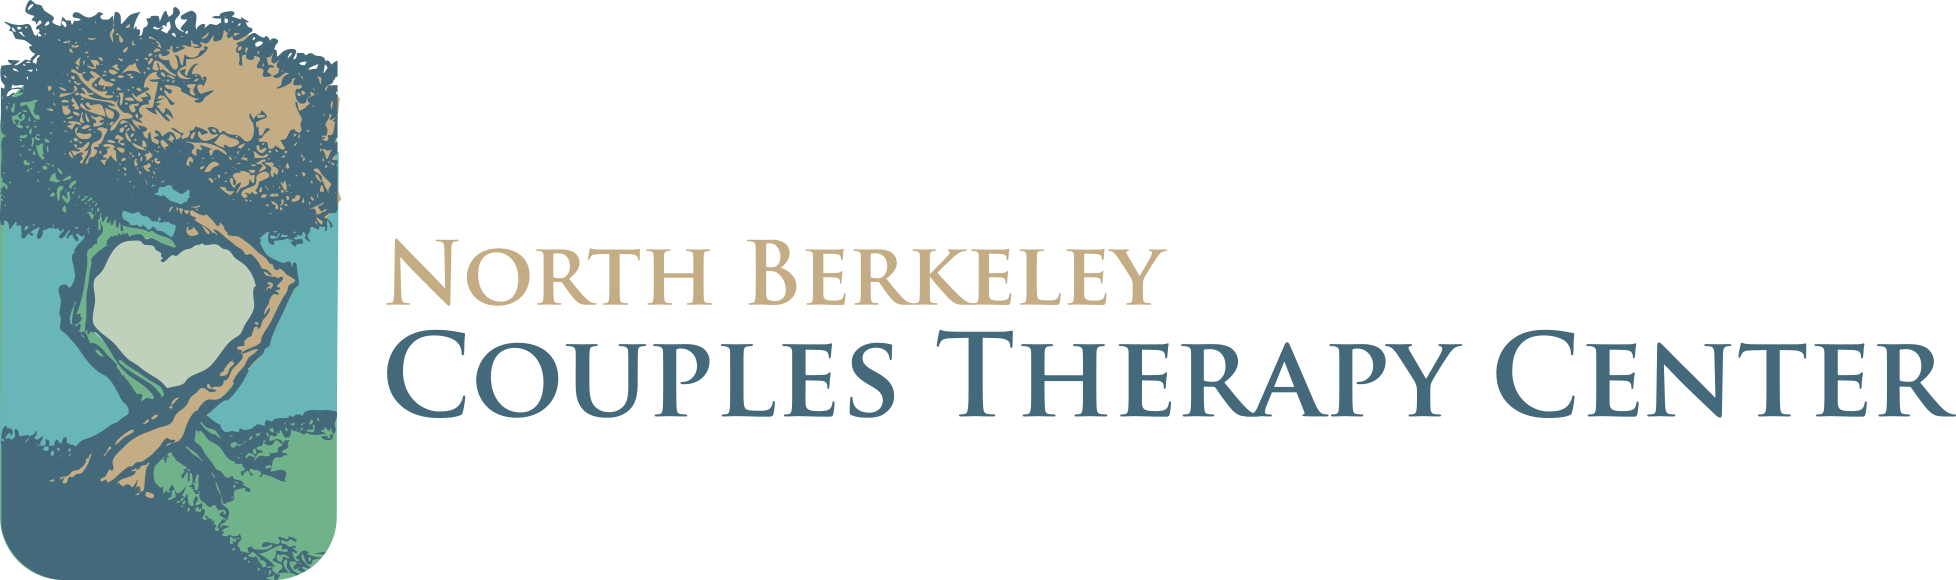 San Francisco Berkeley Napa Valley Walnut Creek Oakland Psychotherapy, Oakland Berkeley Couples Counseling and east bay marriage therapy